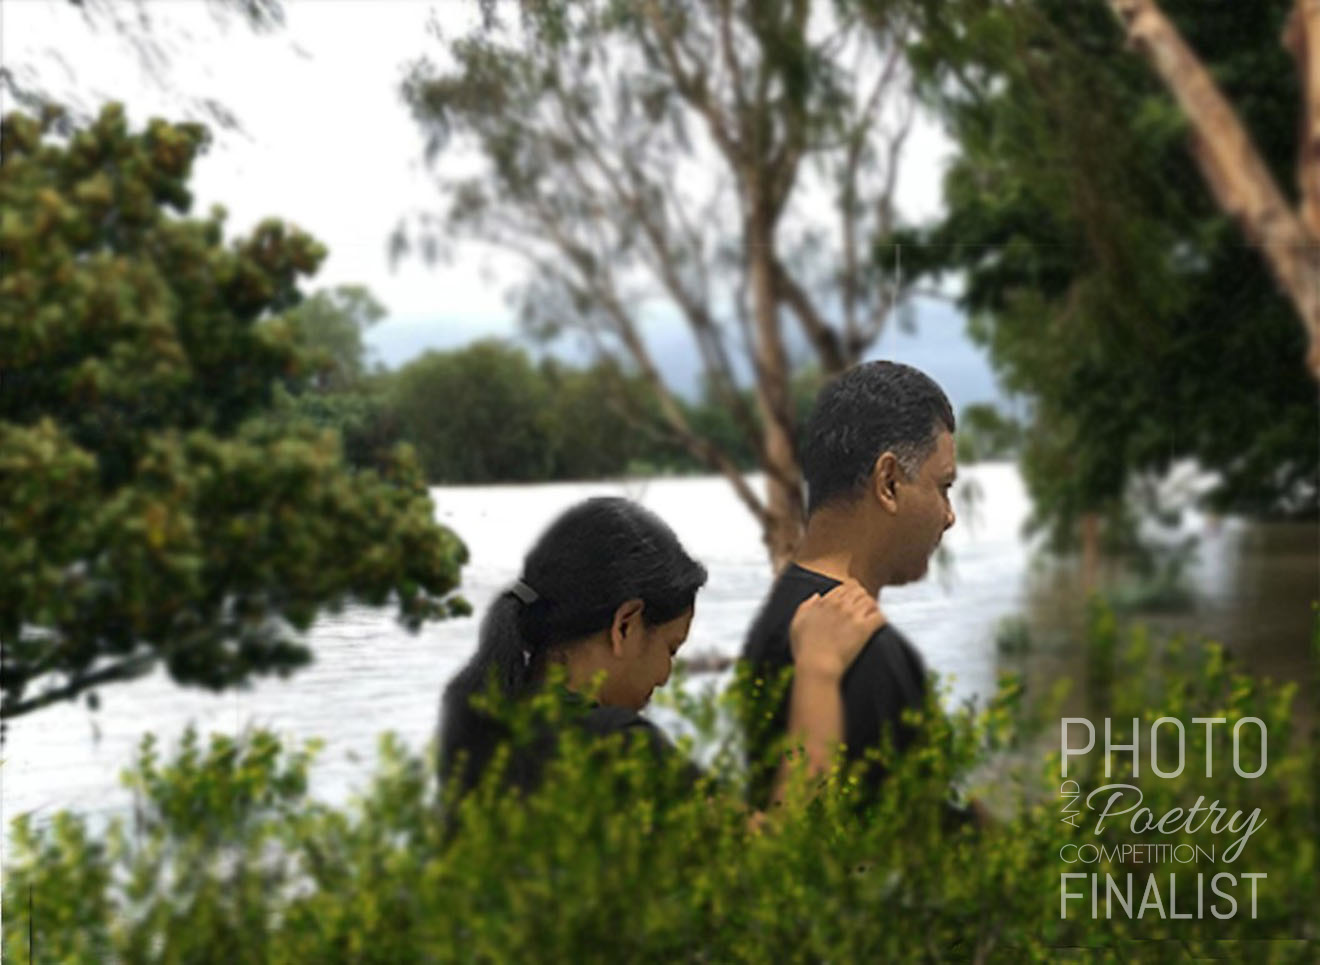 Townsville flooding - In the wrath of Townsville flooding, this photo captures the beauty of a couple trying to walk in the floods. ANKIT GOYAL, Garbutt, QLD